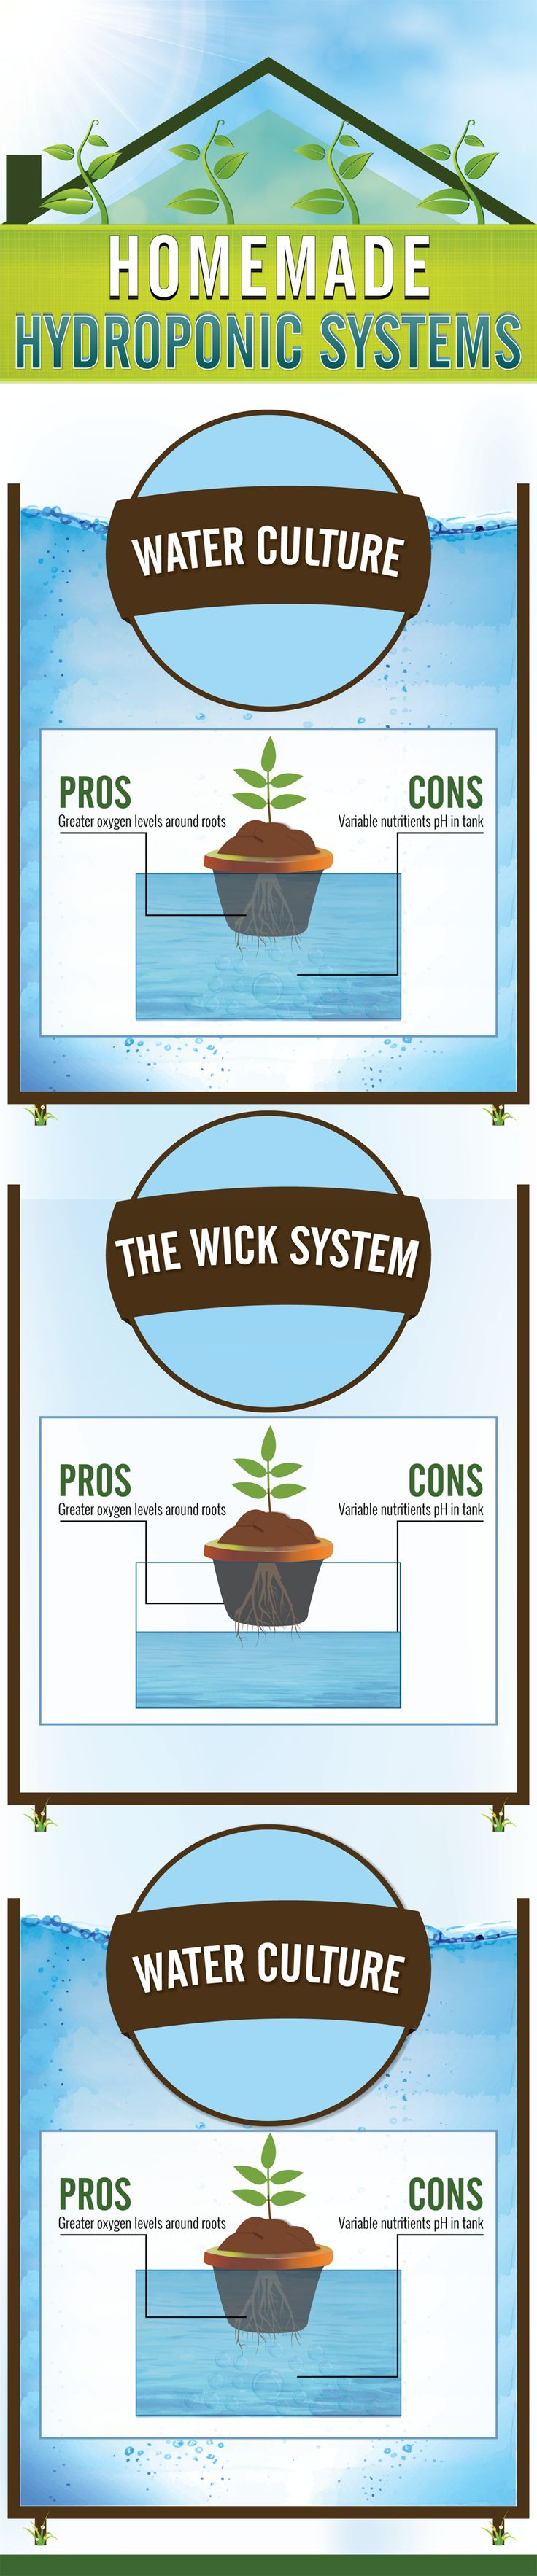 A great DIY hydroponics guide, please read more over at: http://gardenandseeds.co.uk/homemade-hydroponic-systems/ #hydroponics